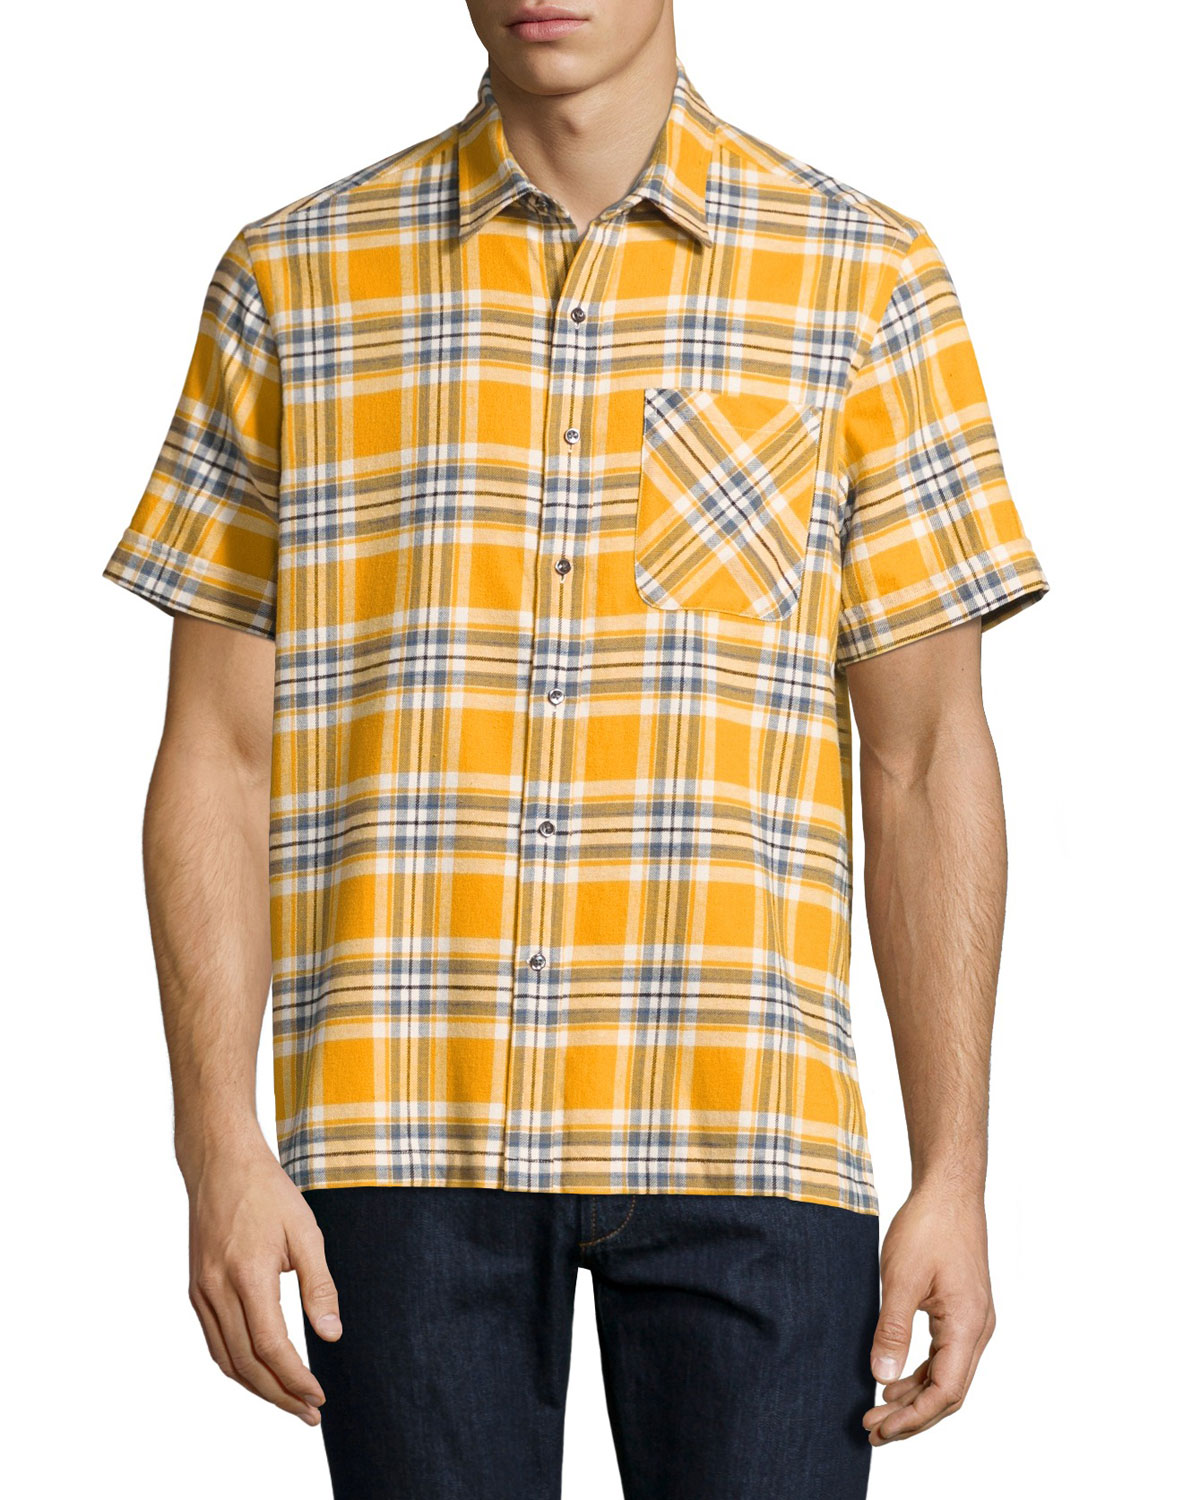 Plaid Short-Sleeve Camp Shirt, Mustard